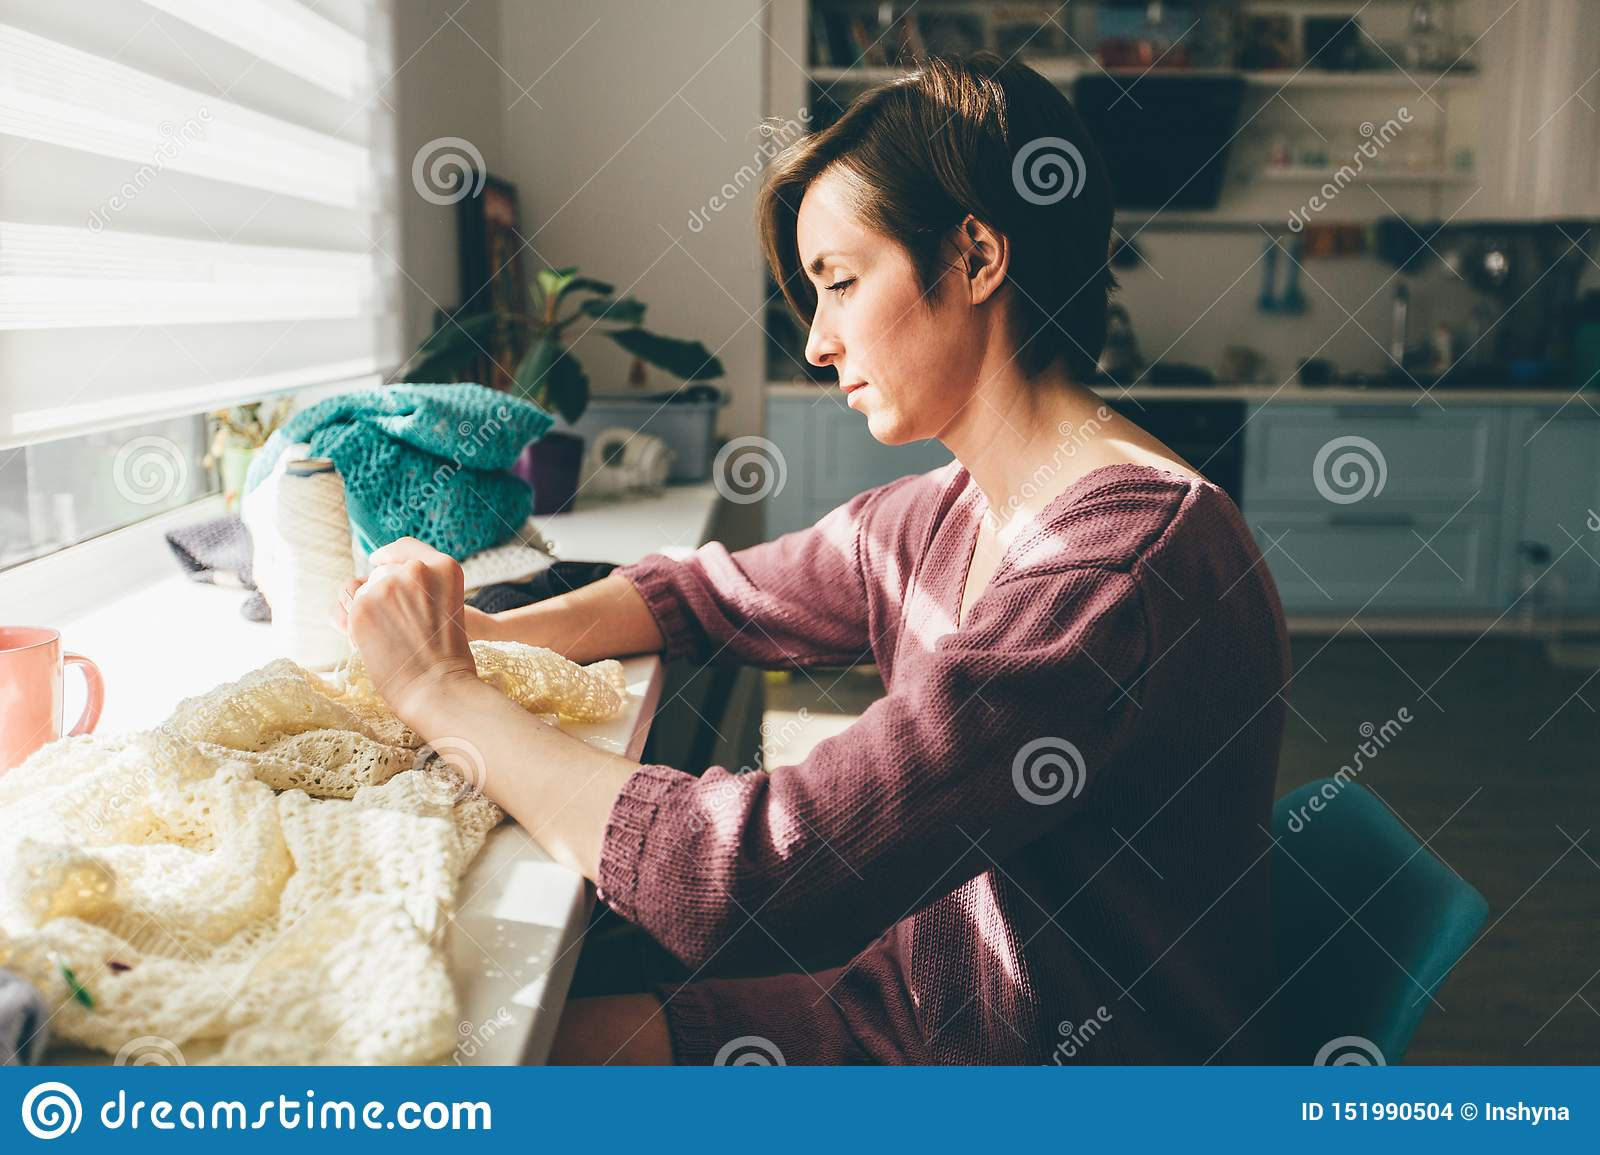 Side of woman knitting tender lace for tablecloth with crochet. Female freelancer creative working at cozy home workplace.